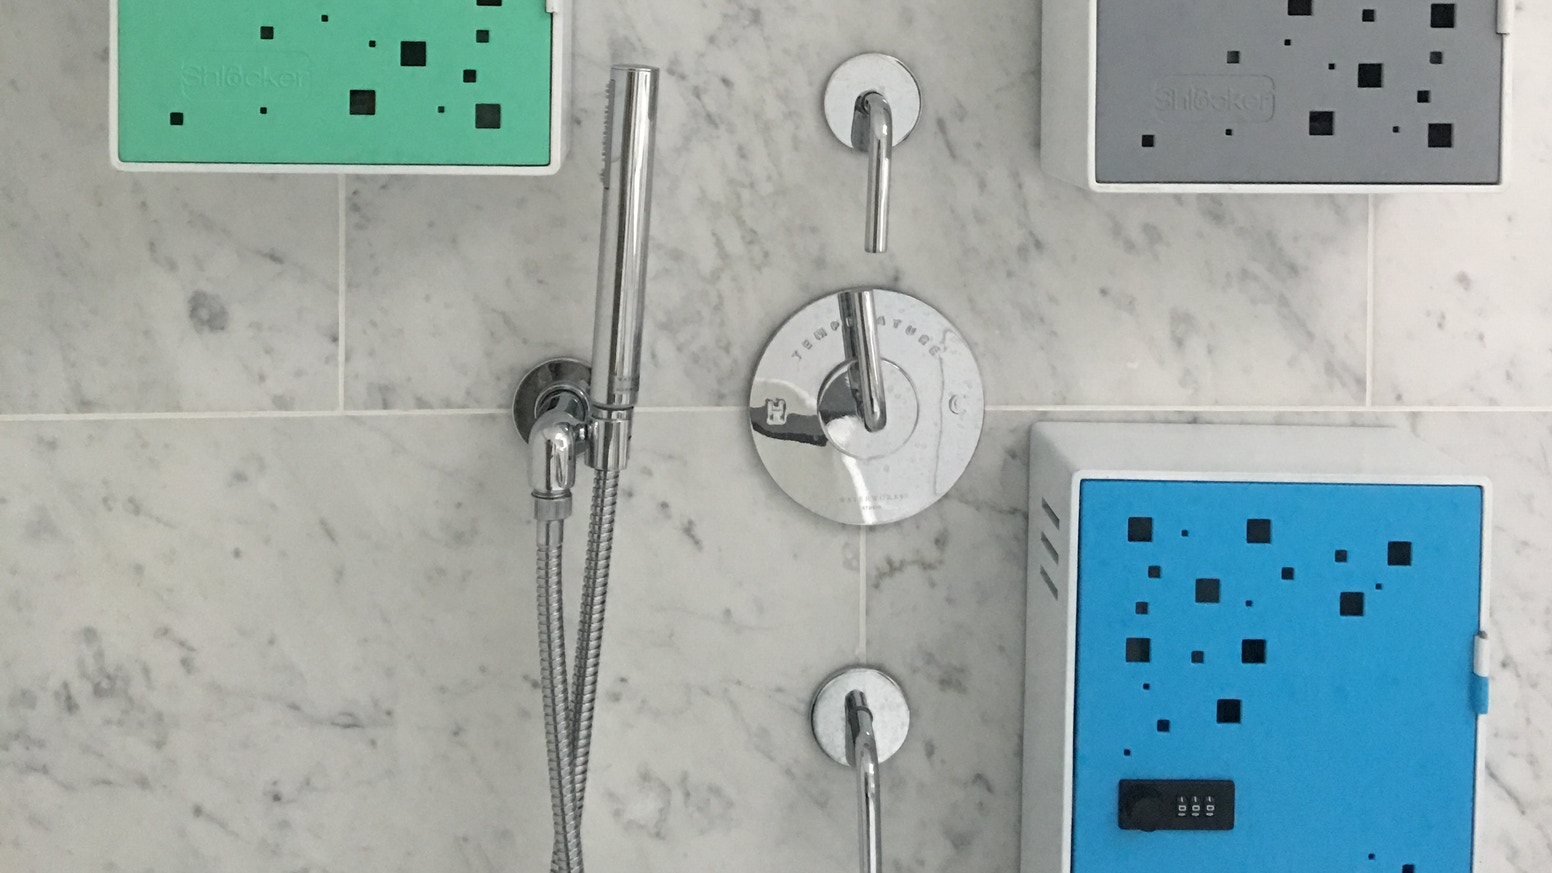 The Shlocker allows you to keep your products in the shower AND safe from roommates, housemates or siblings!